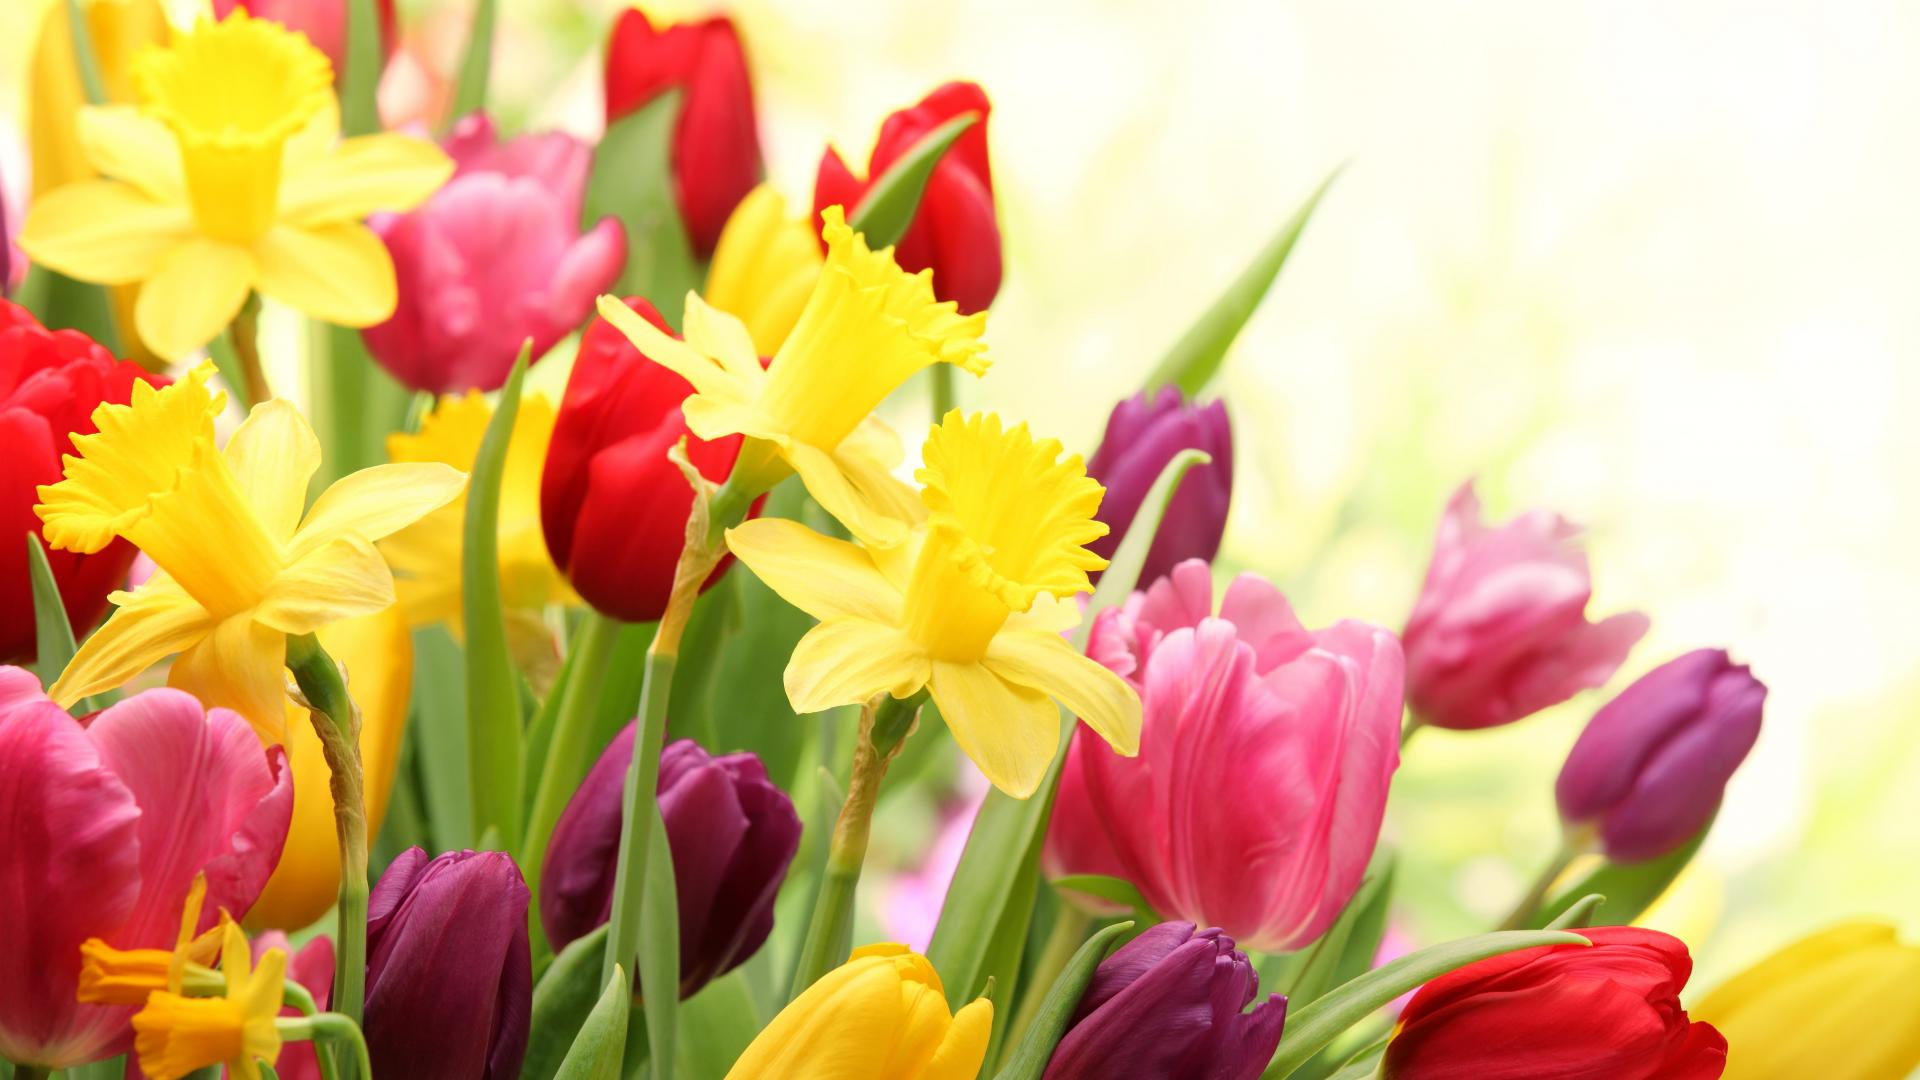 Spring Flowers Wallpapers High Quality Download Free